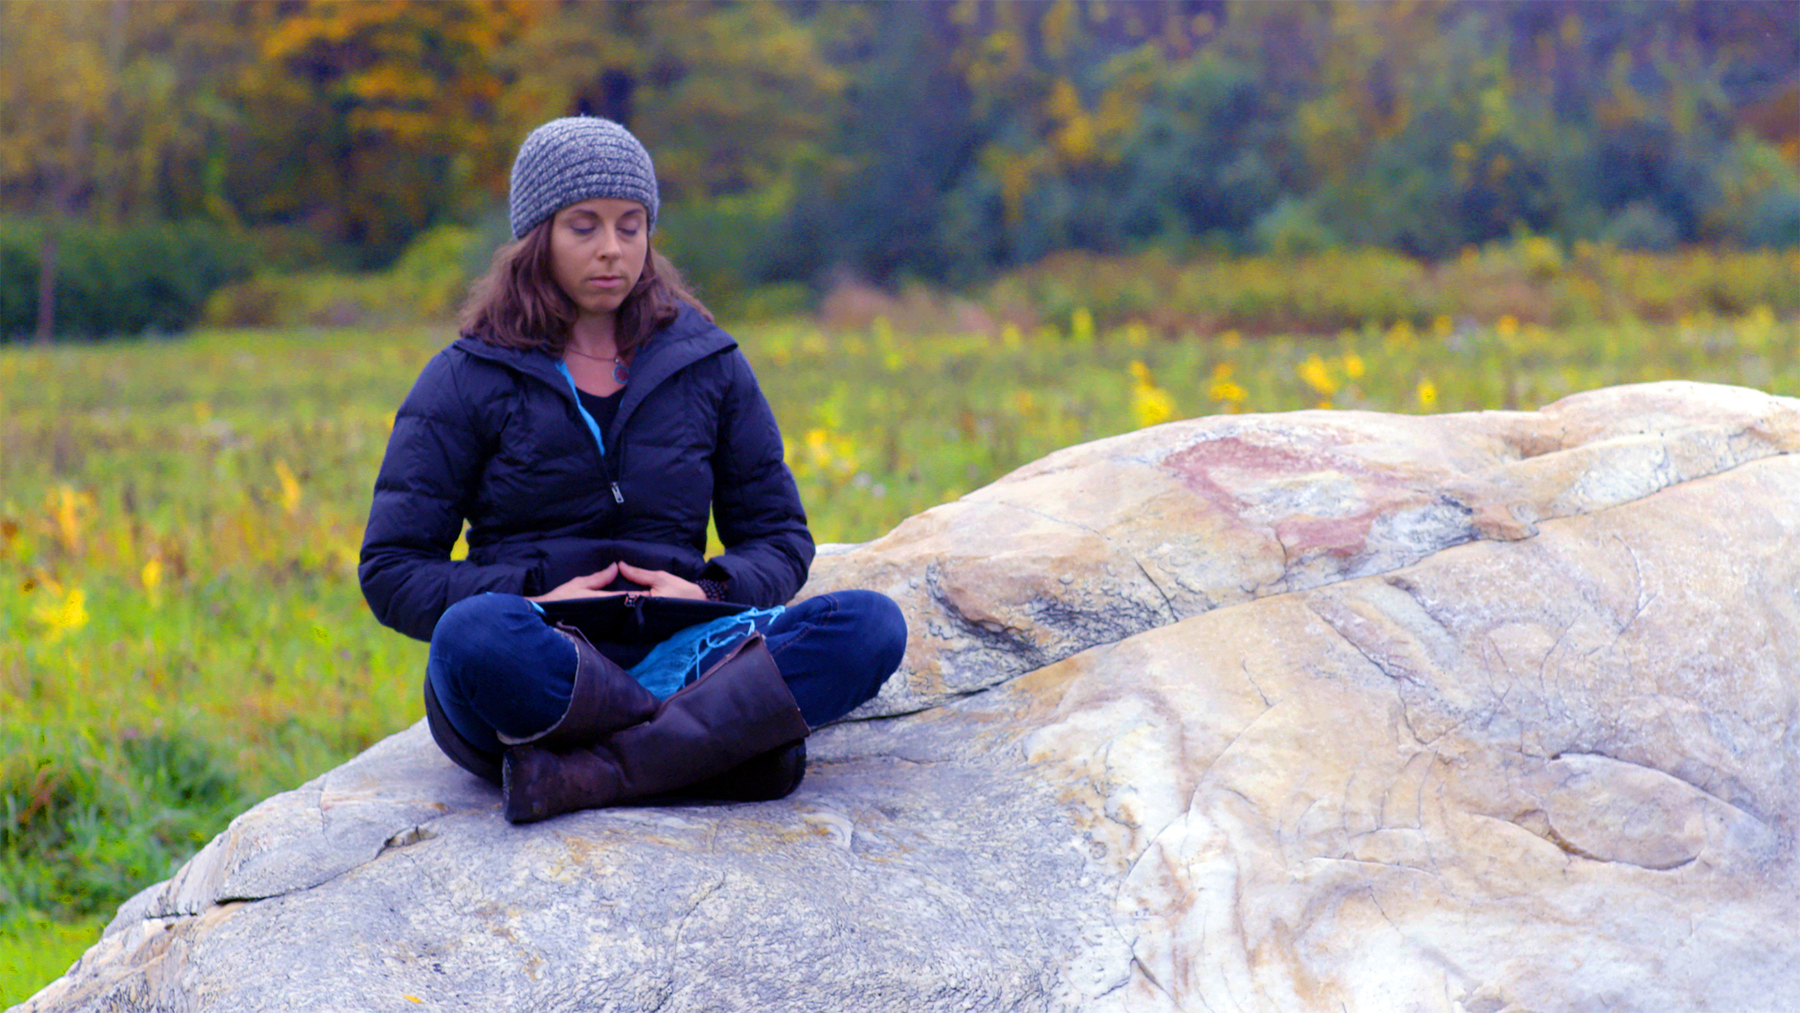 Meg meditating in the Berkshire Mountains